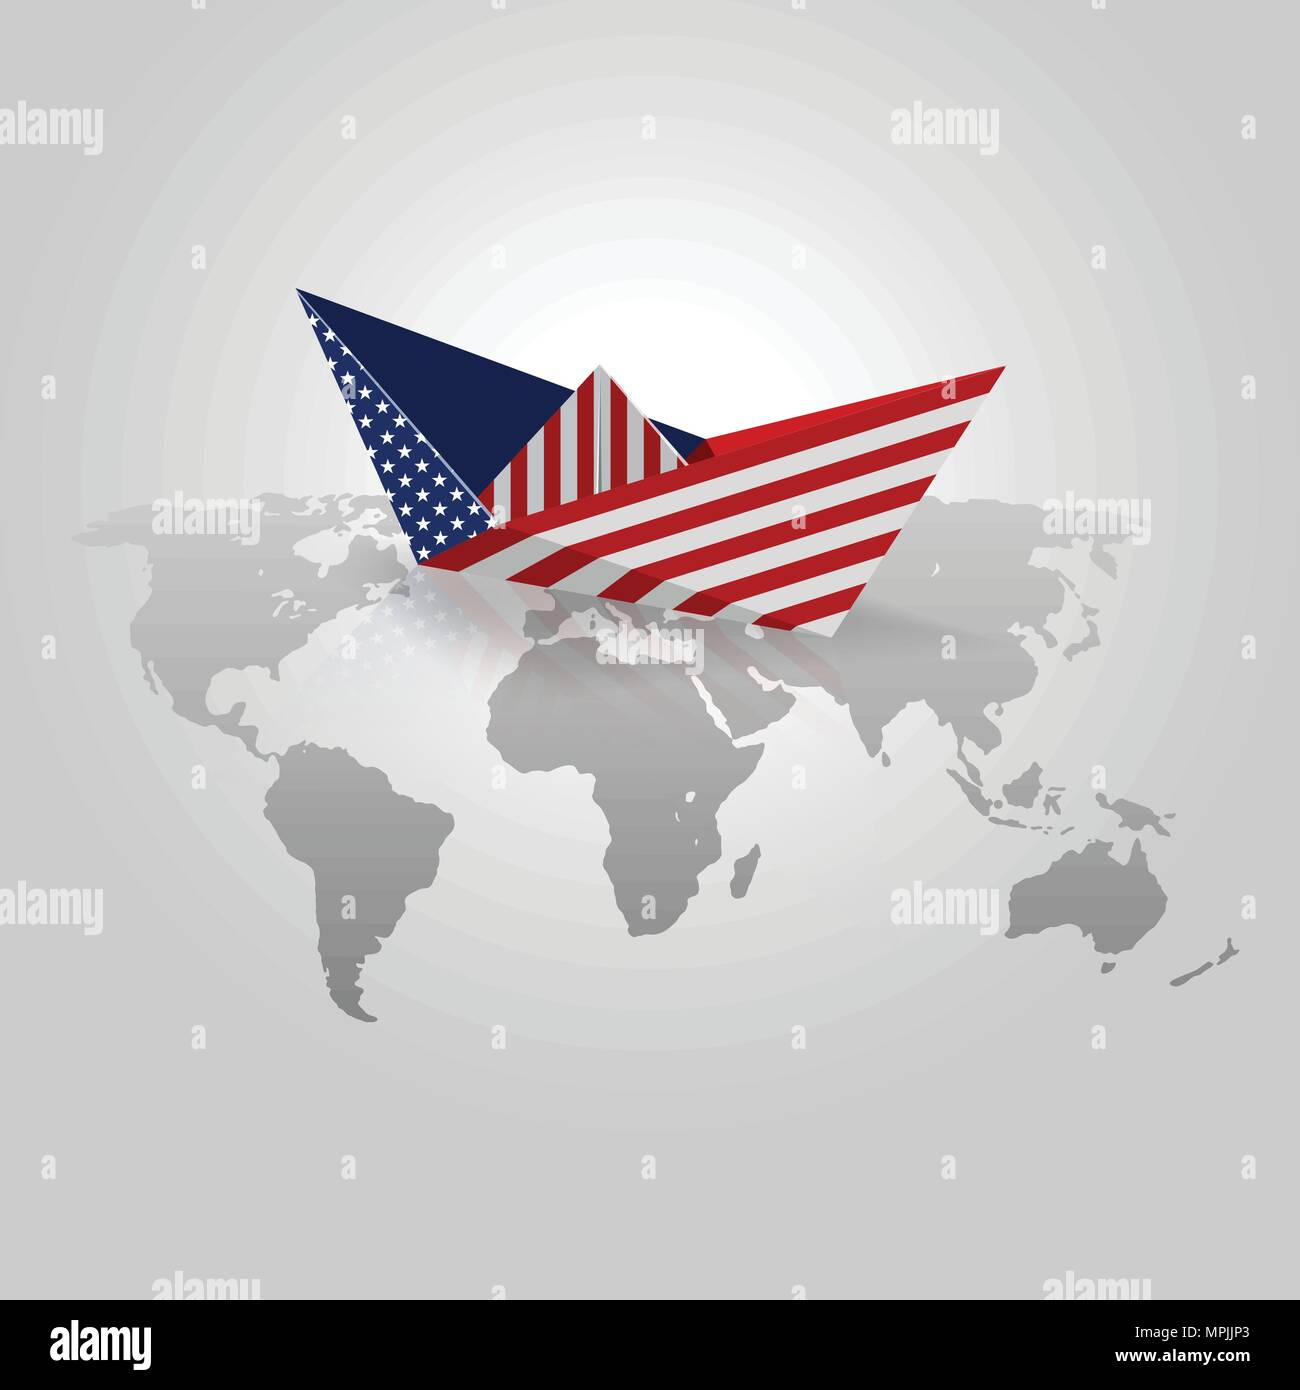 Paper boat with united states flag origami paper with usa flag over paper boat with united states flag origami paper with usa flag over world map vectors gumiabroncs Gallery